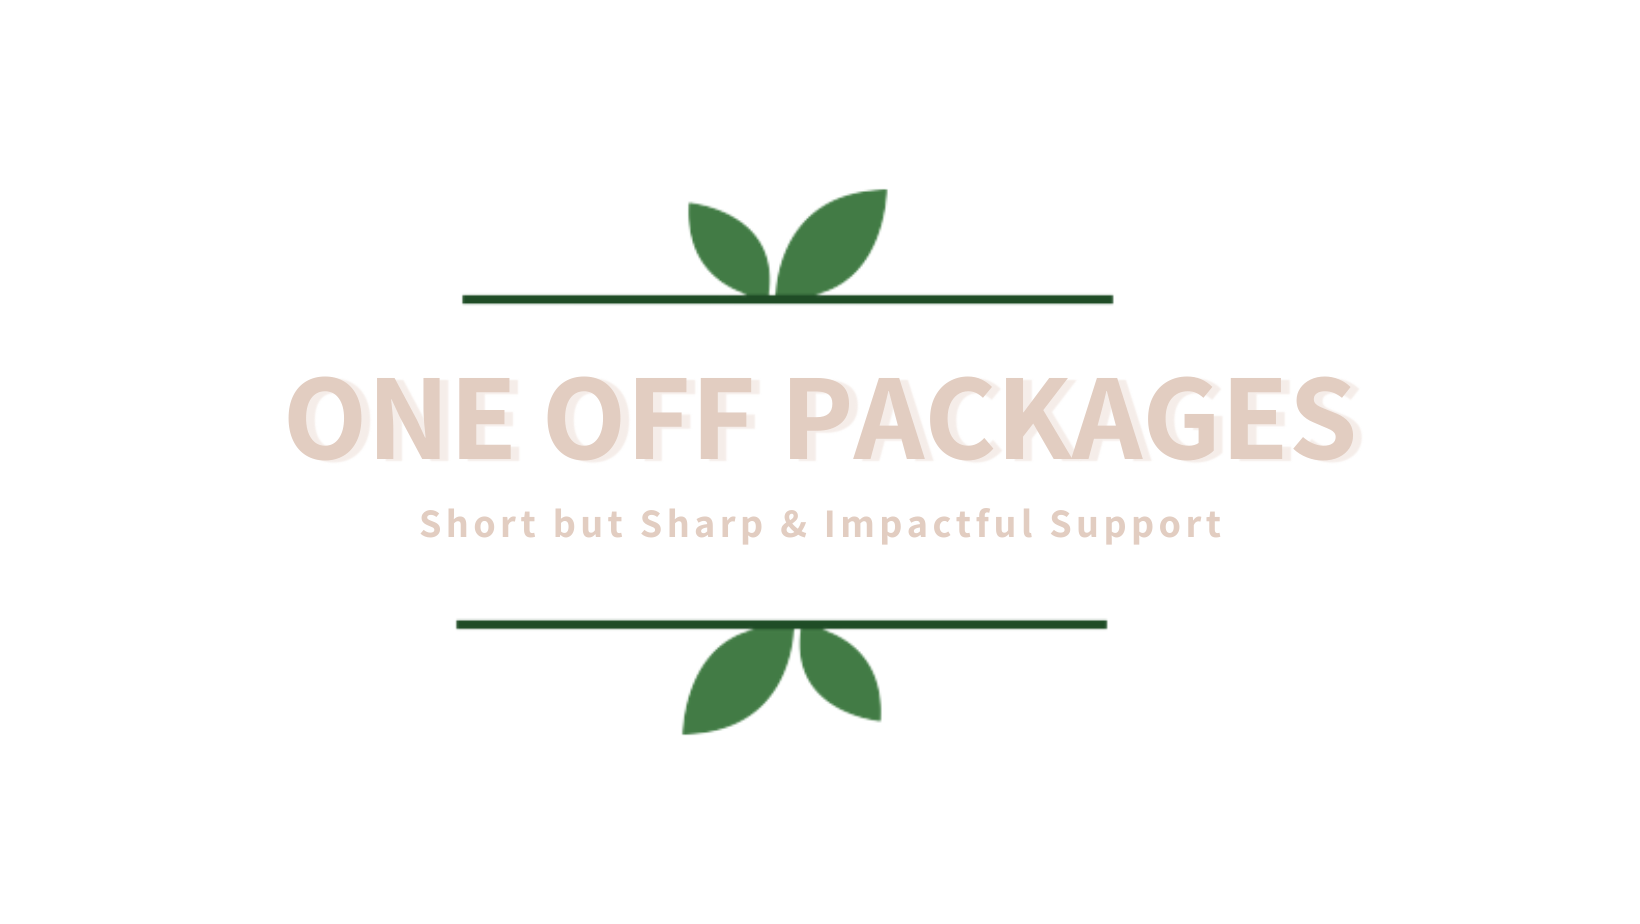 One off Packages